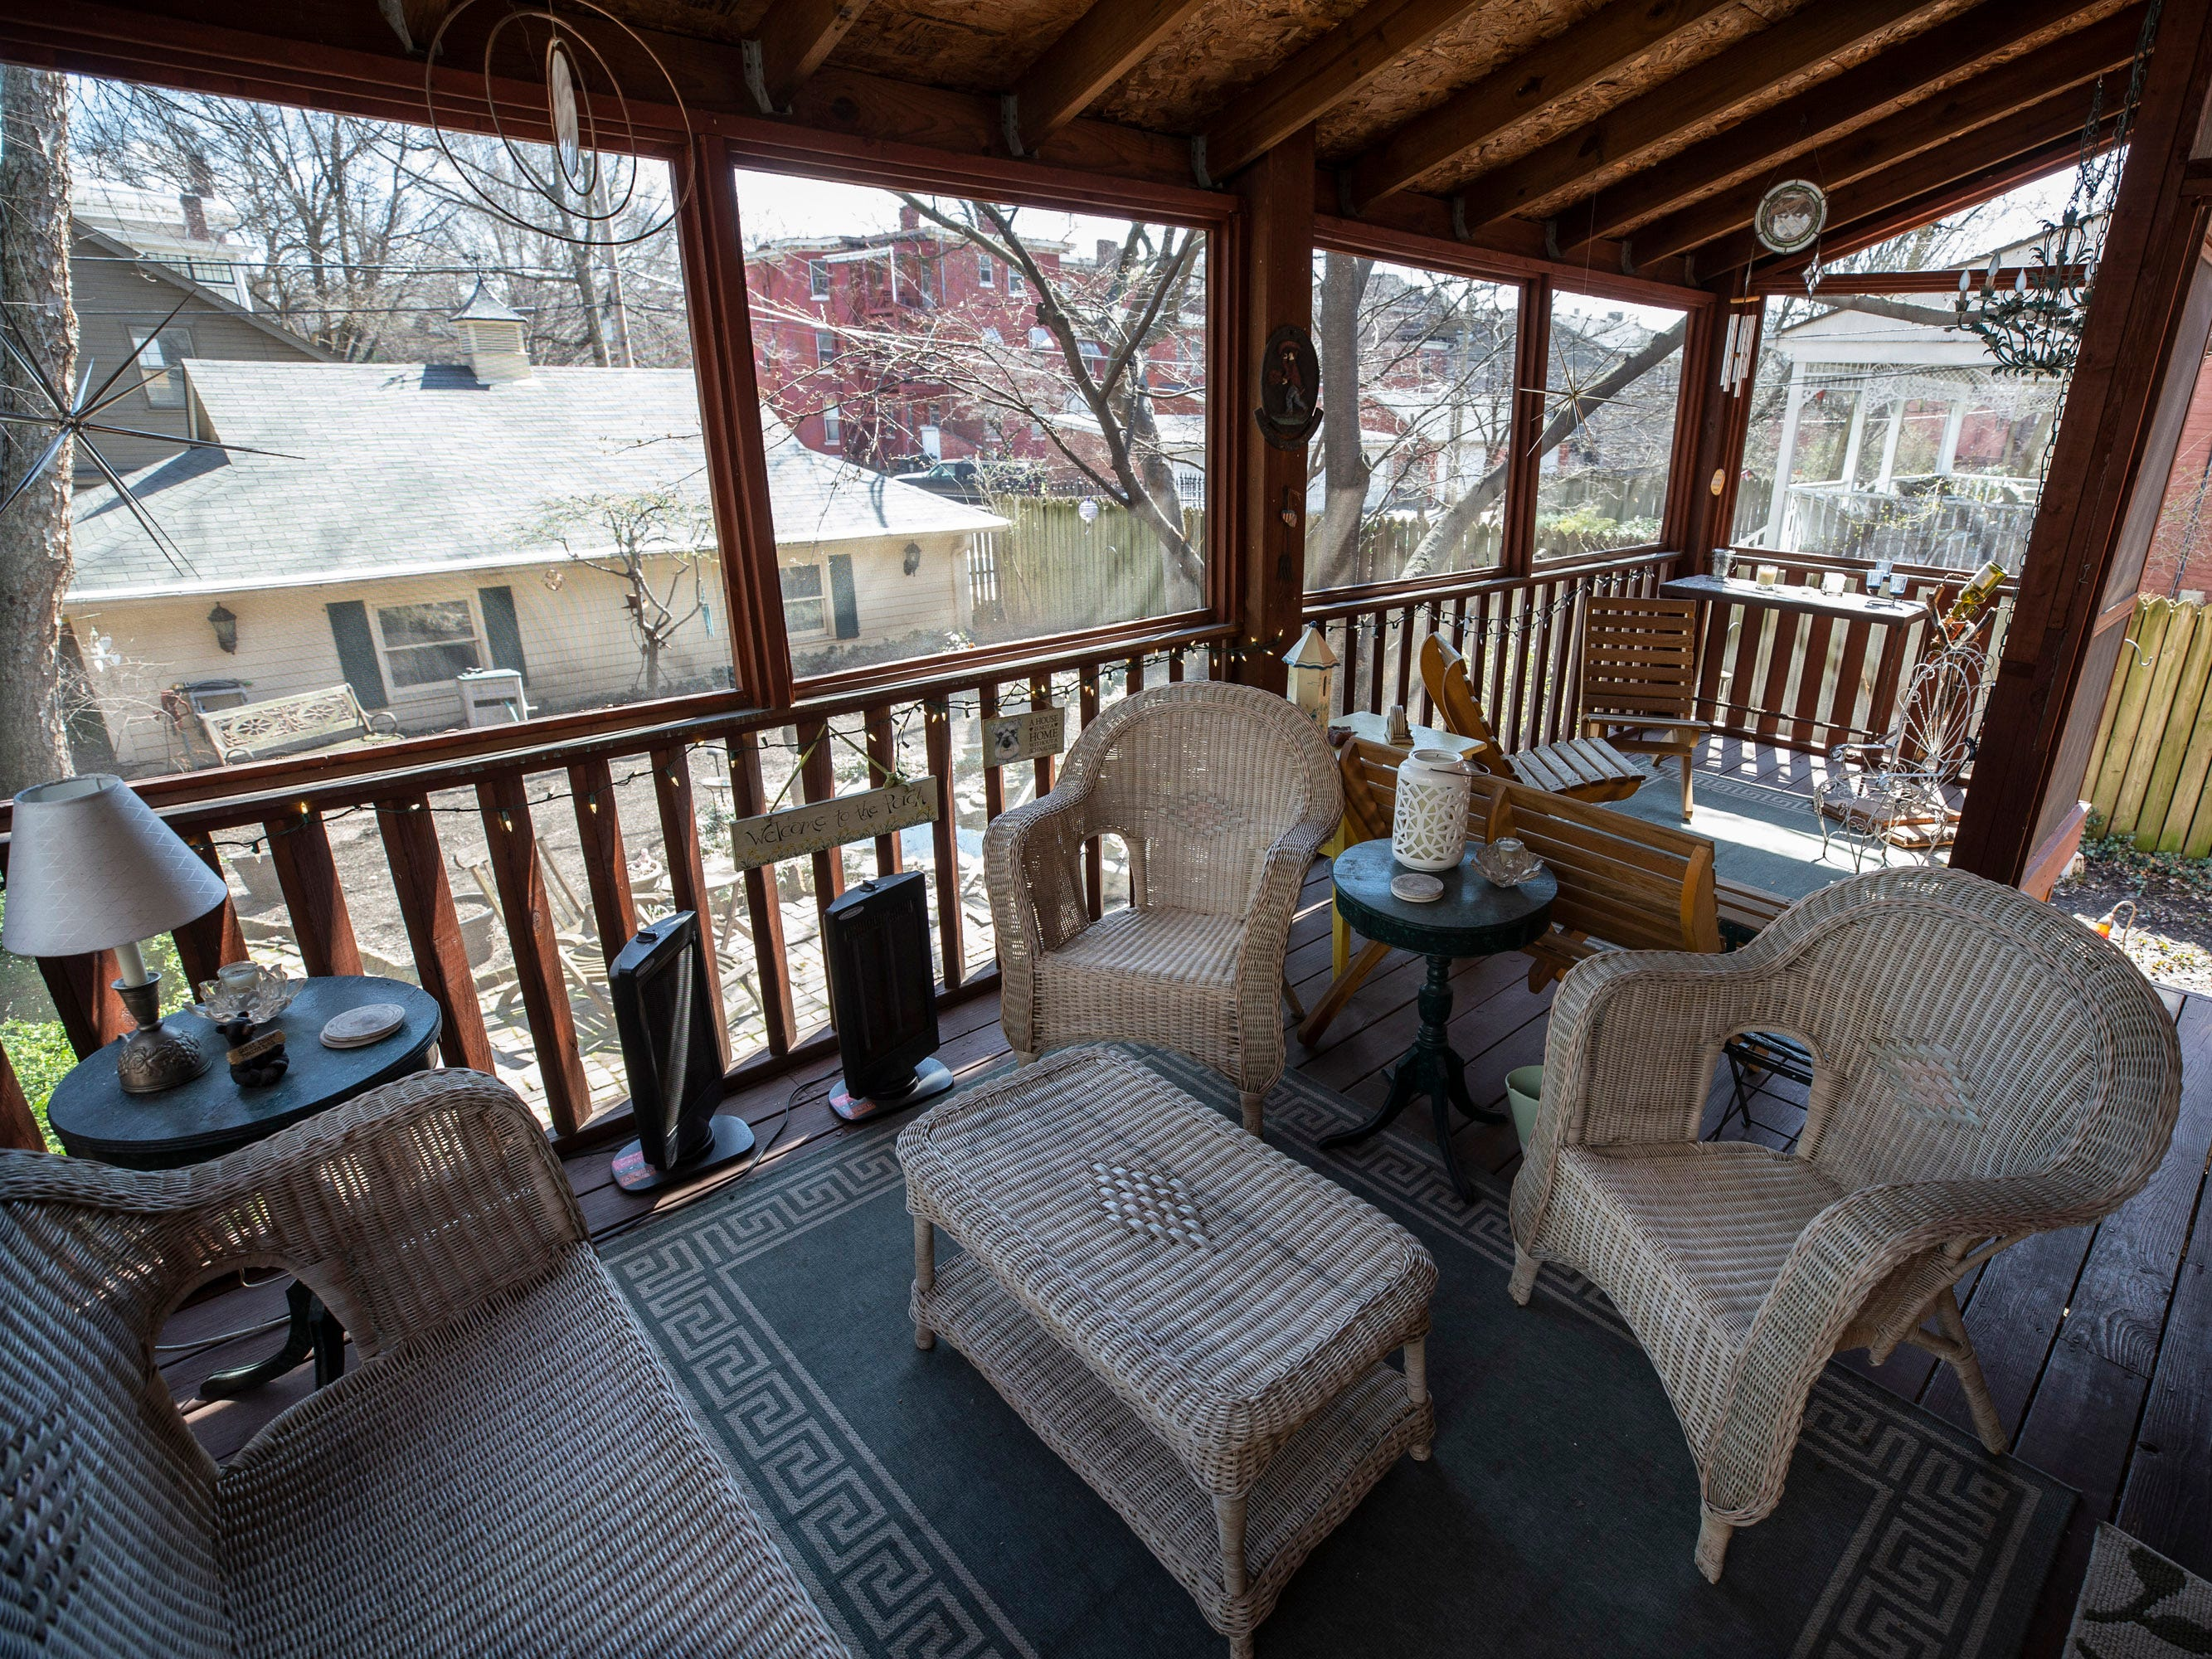 The rear porch of Hank and Ann Triplett's home in Old Louisville. March 18, 2019.